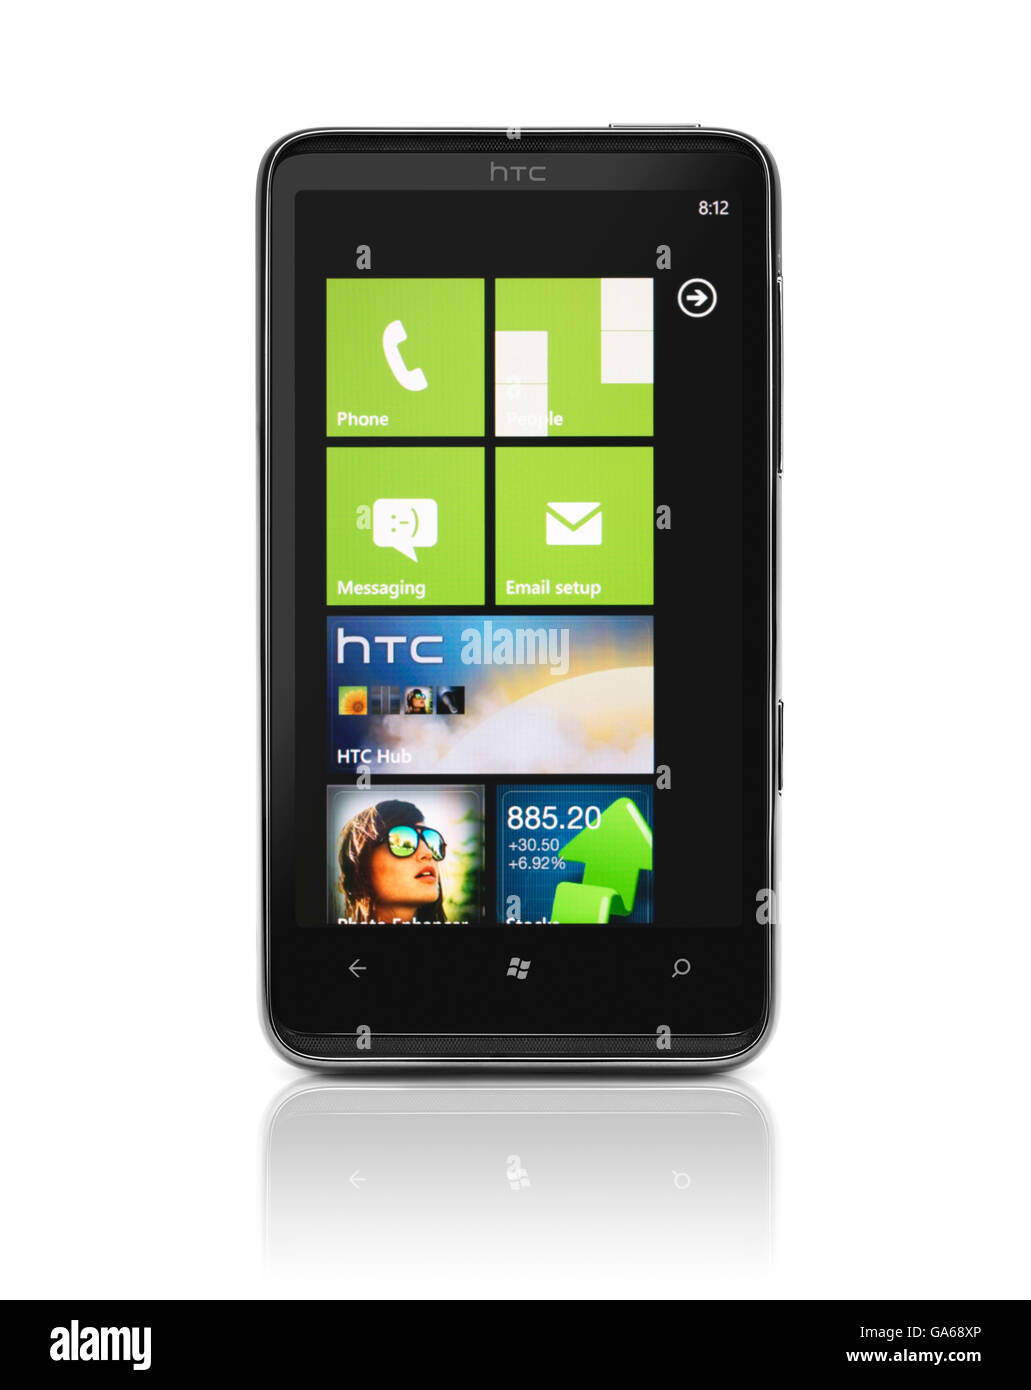 Windows Phone 7, le HTC HD7 smartphone avec carreaux de bureau sur son écran Photo Stock